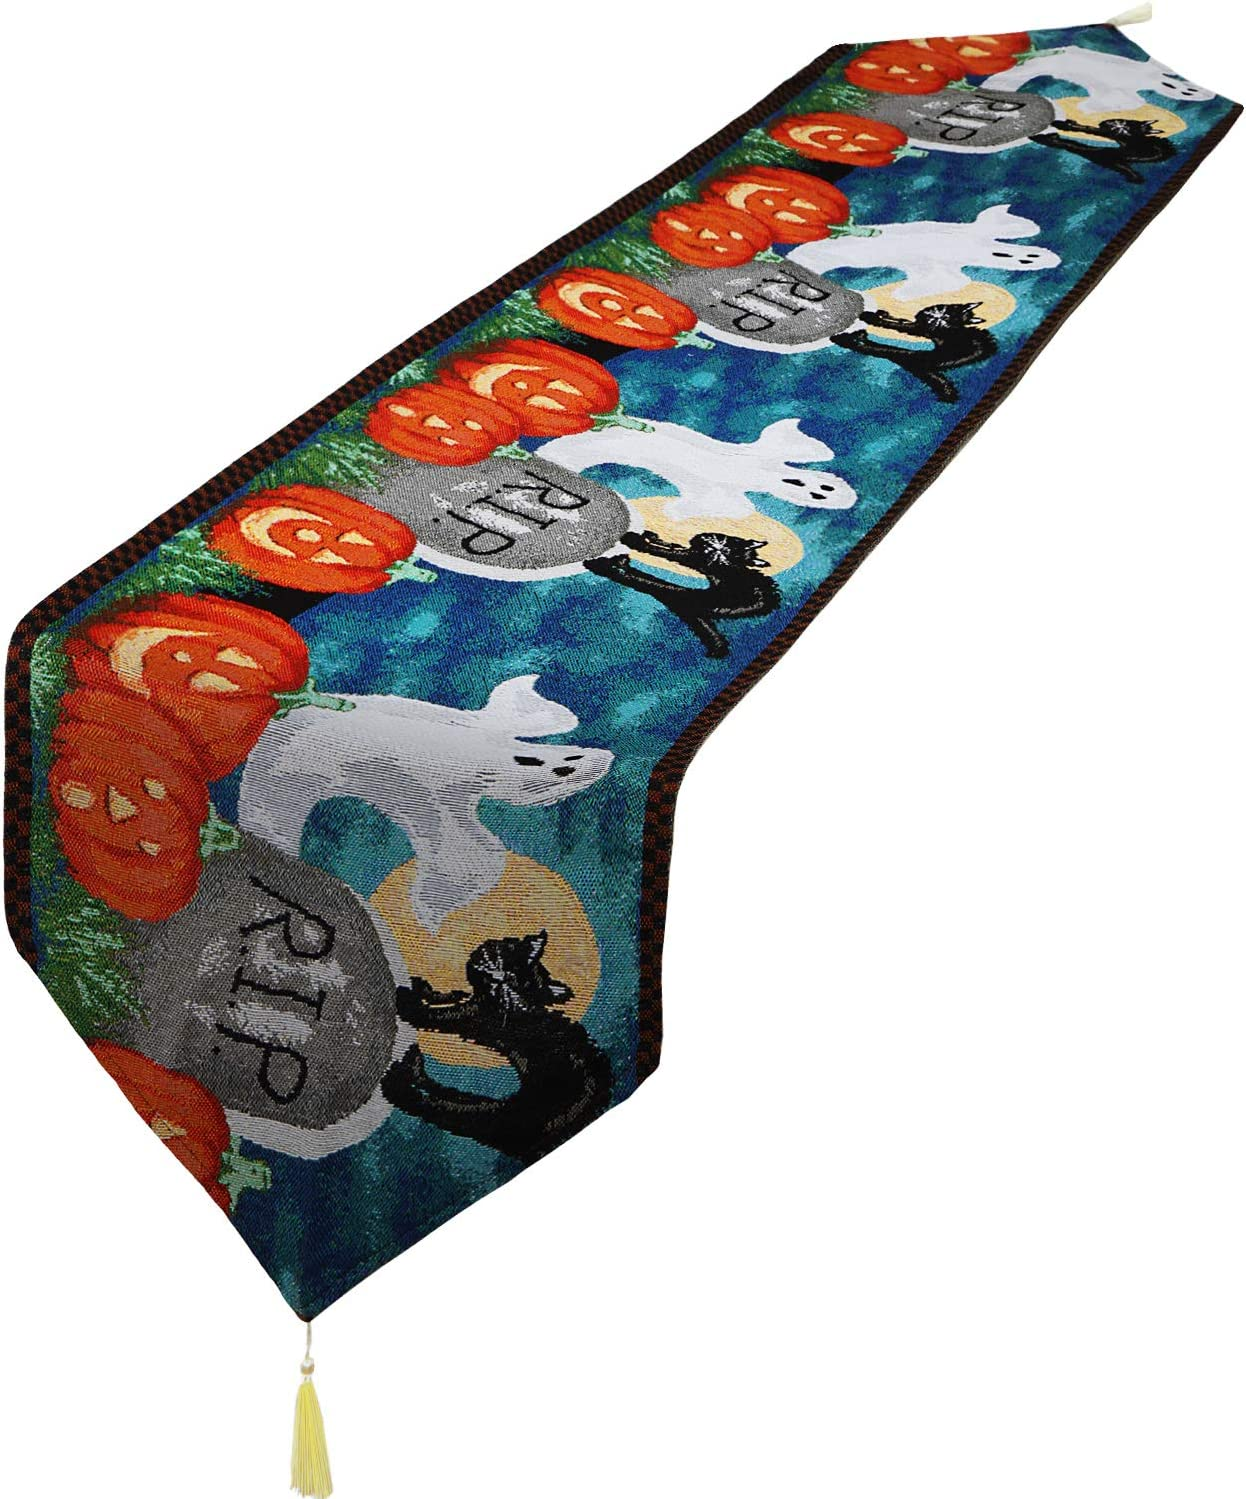 National products [Alternative dealer] Decorative Table Runner Linen Cloth Tassels for Hallo with